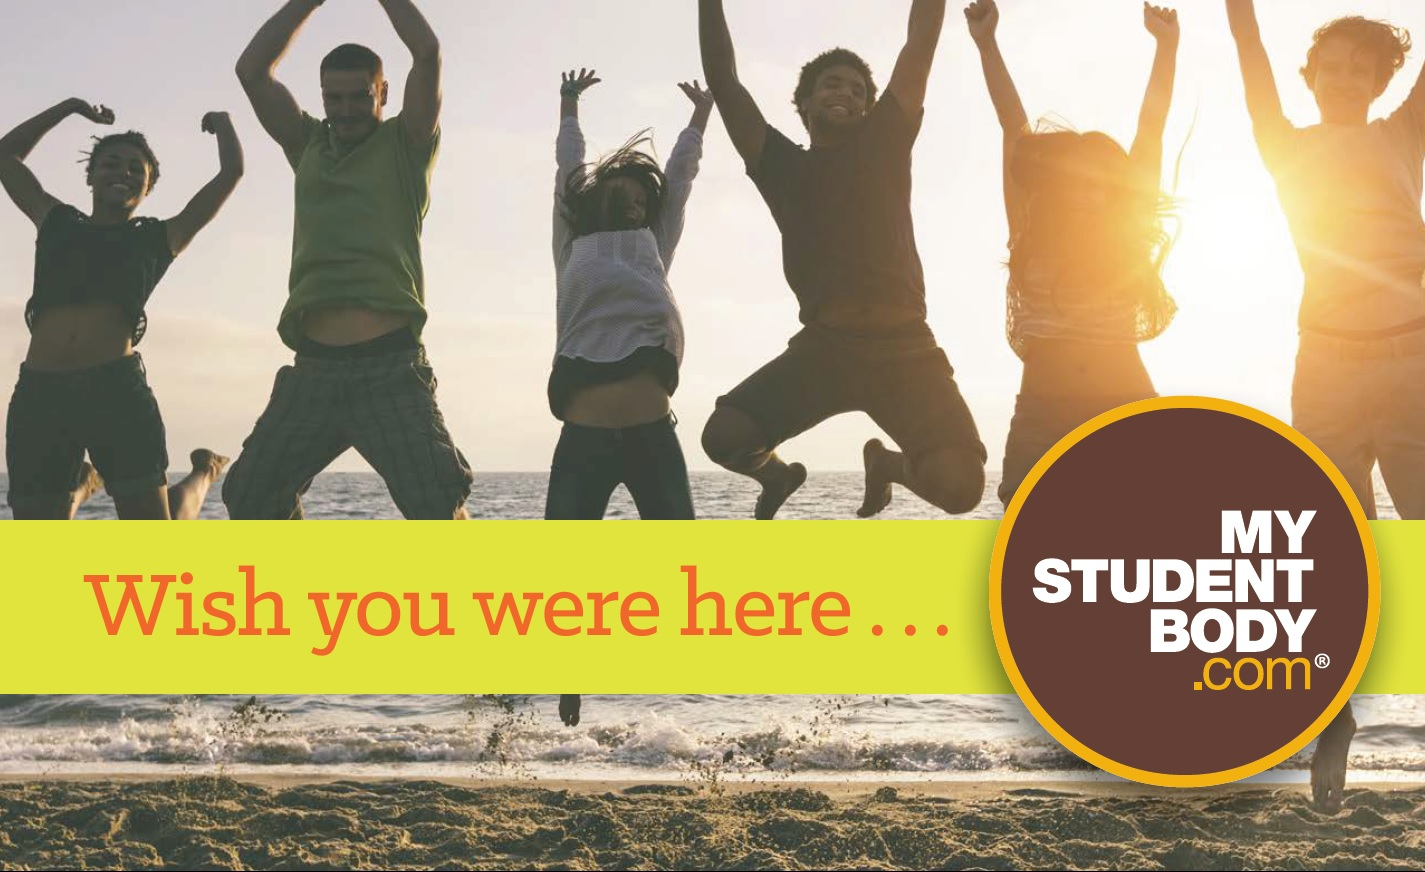 Keep students safe on spring break with MyStudentBody.com